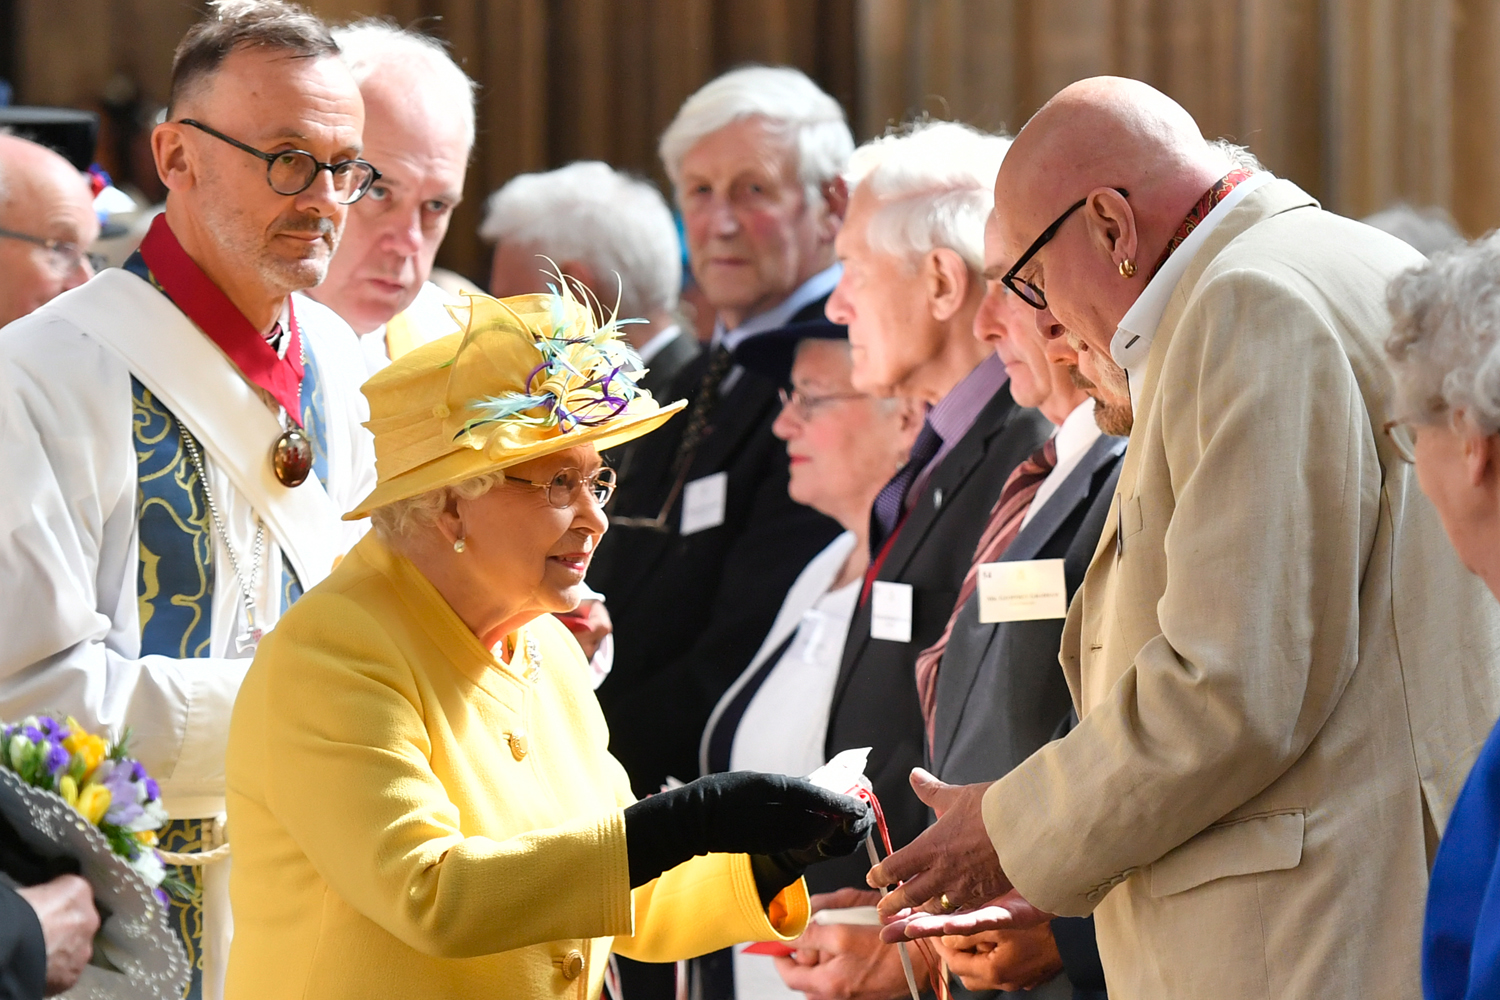 Britain's Queen Elizabeth II distributes the Maundy money during the Royal Maundy Service at St George's Chapel